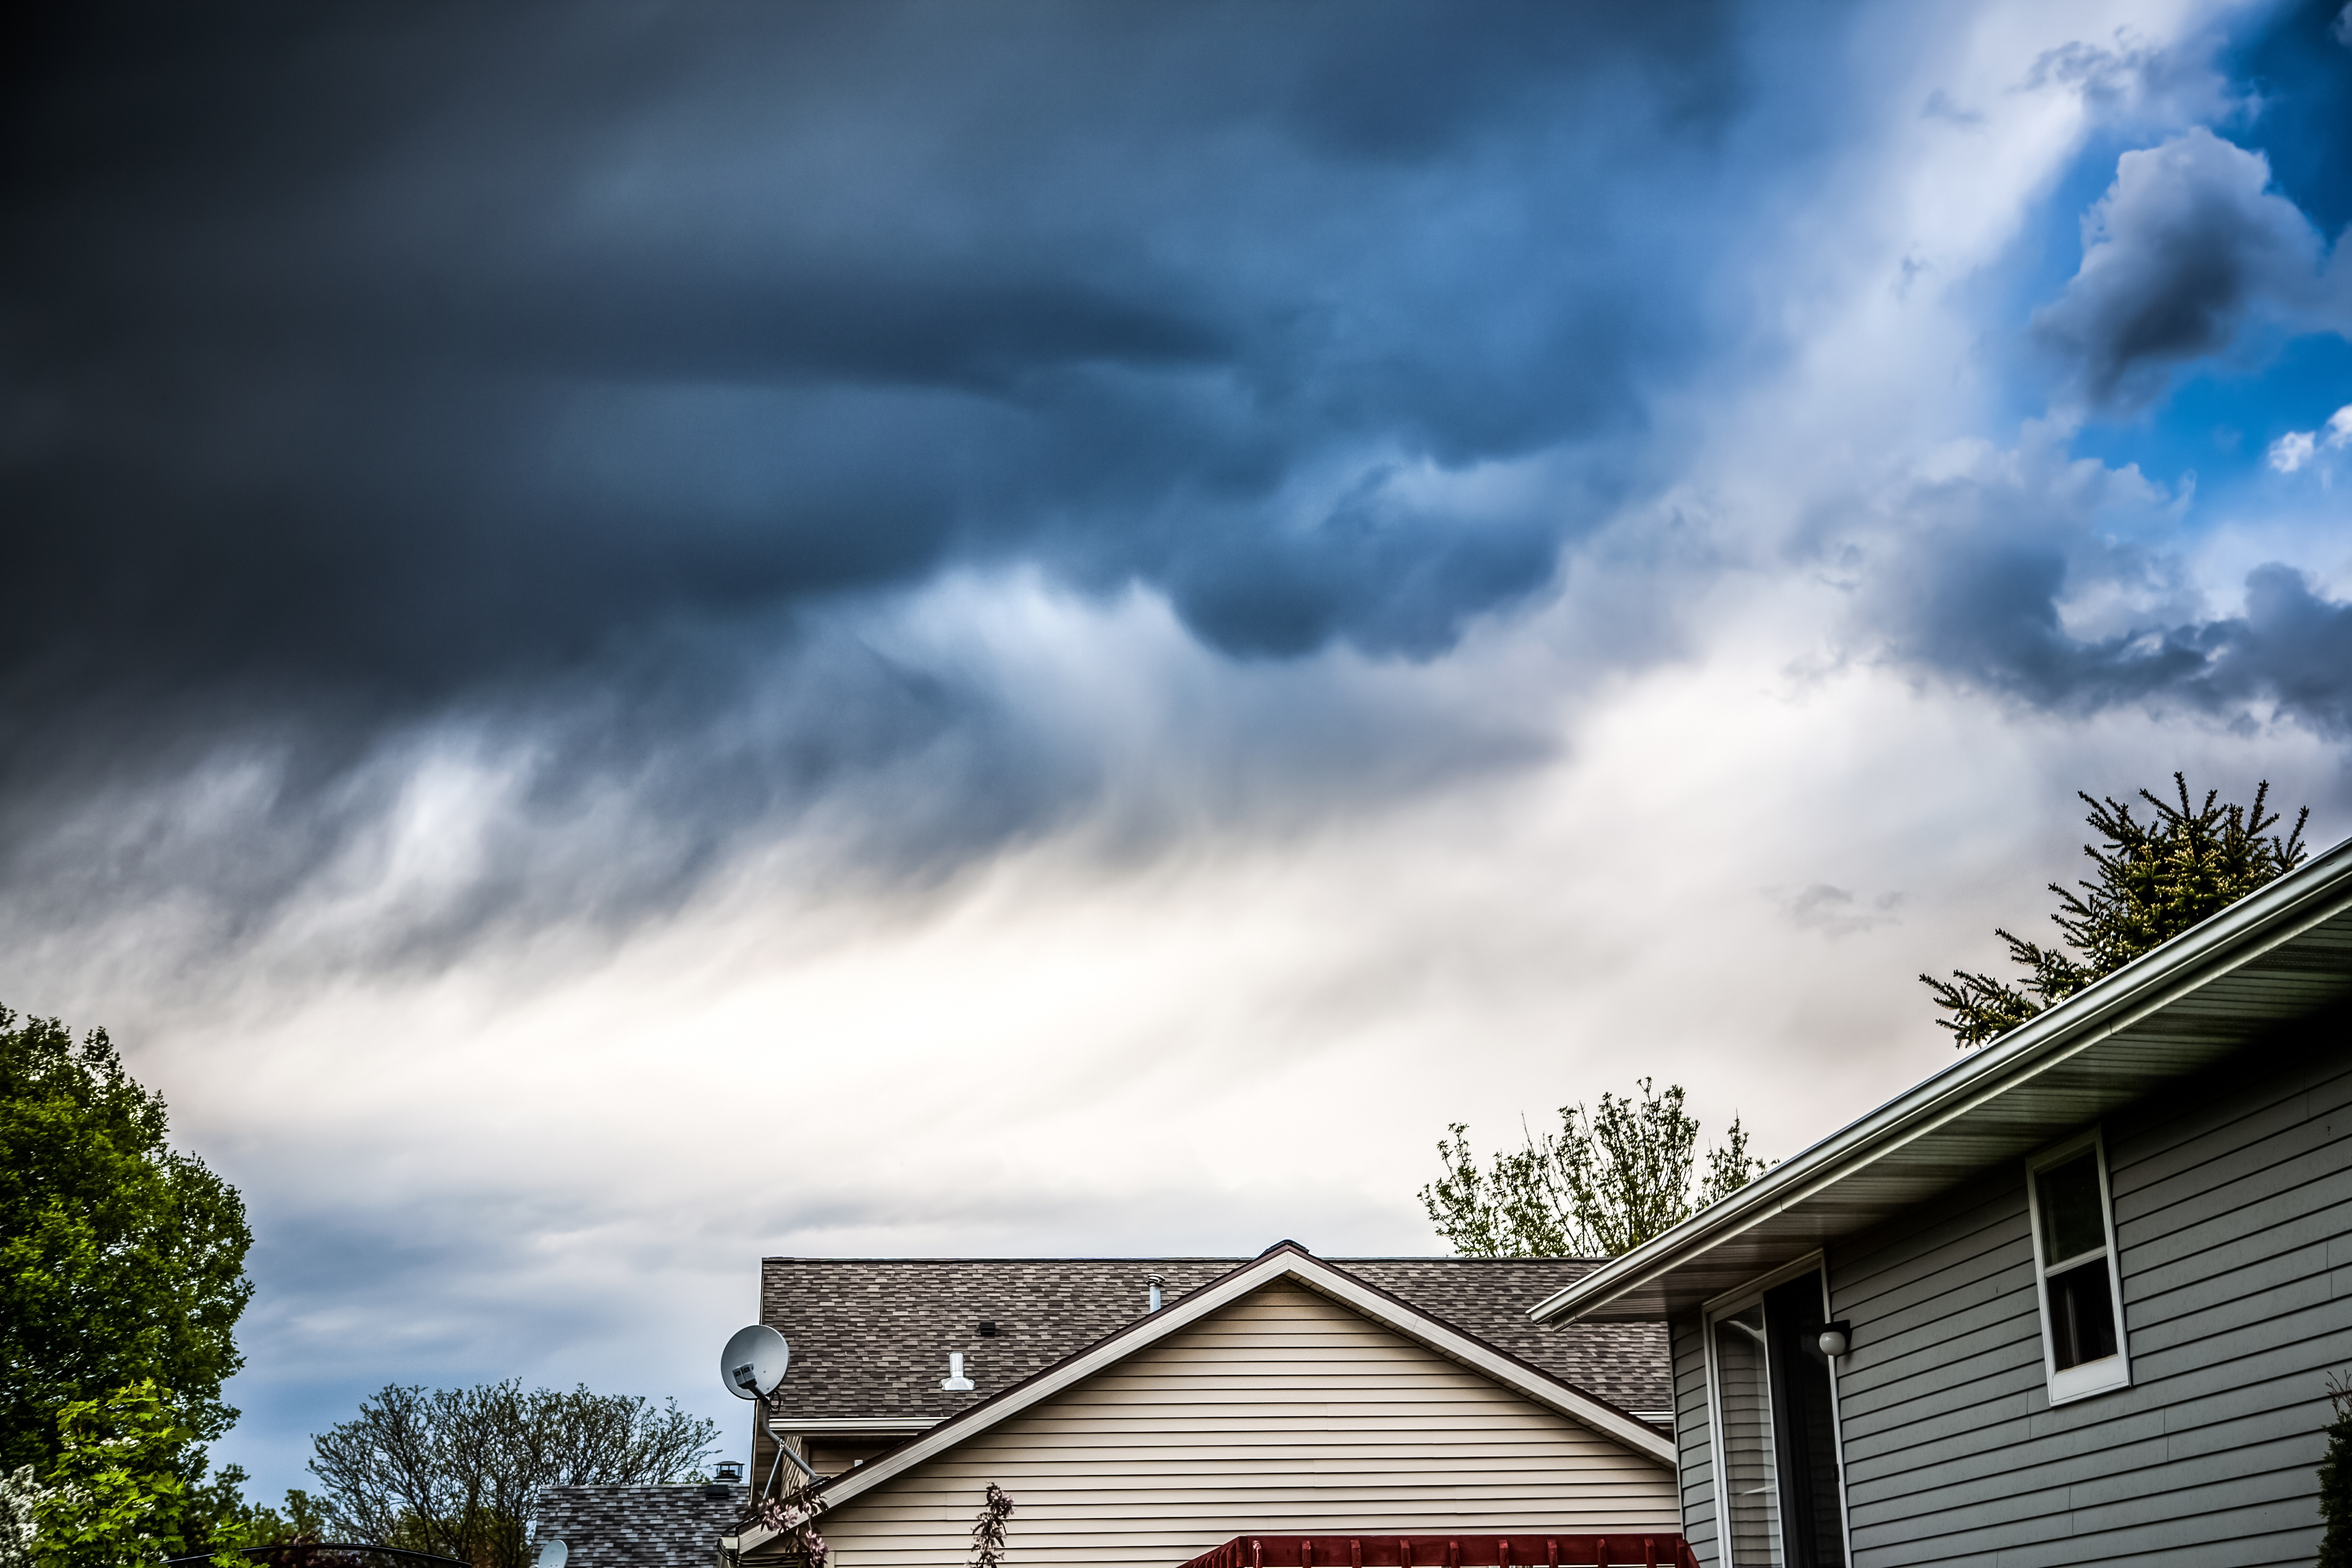 TENANTS: ARE YOU PREPARED FOR 2019 STORM SEASON?